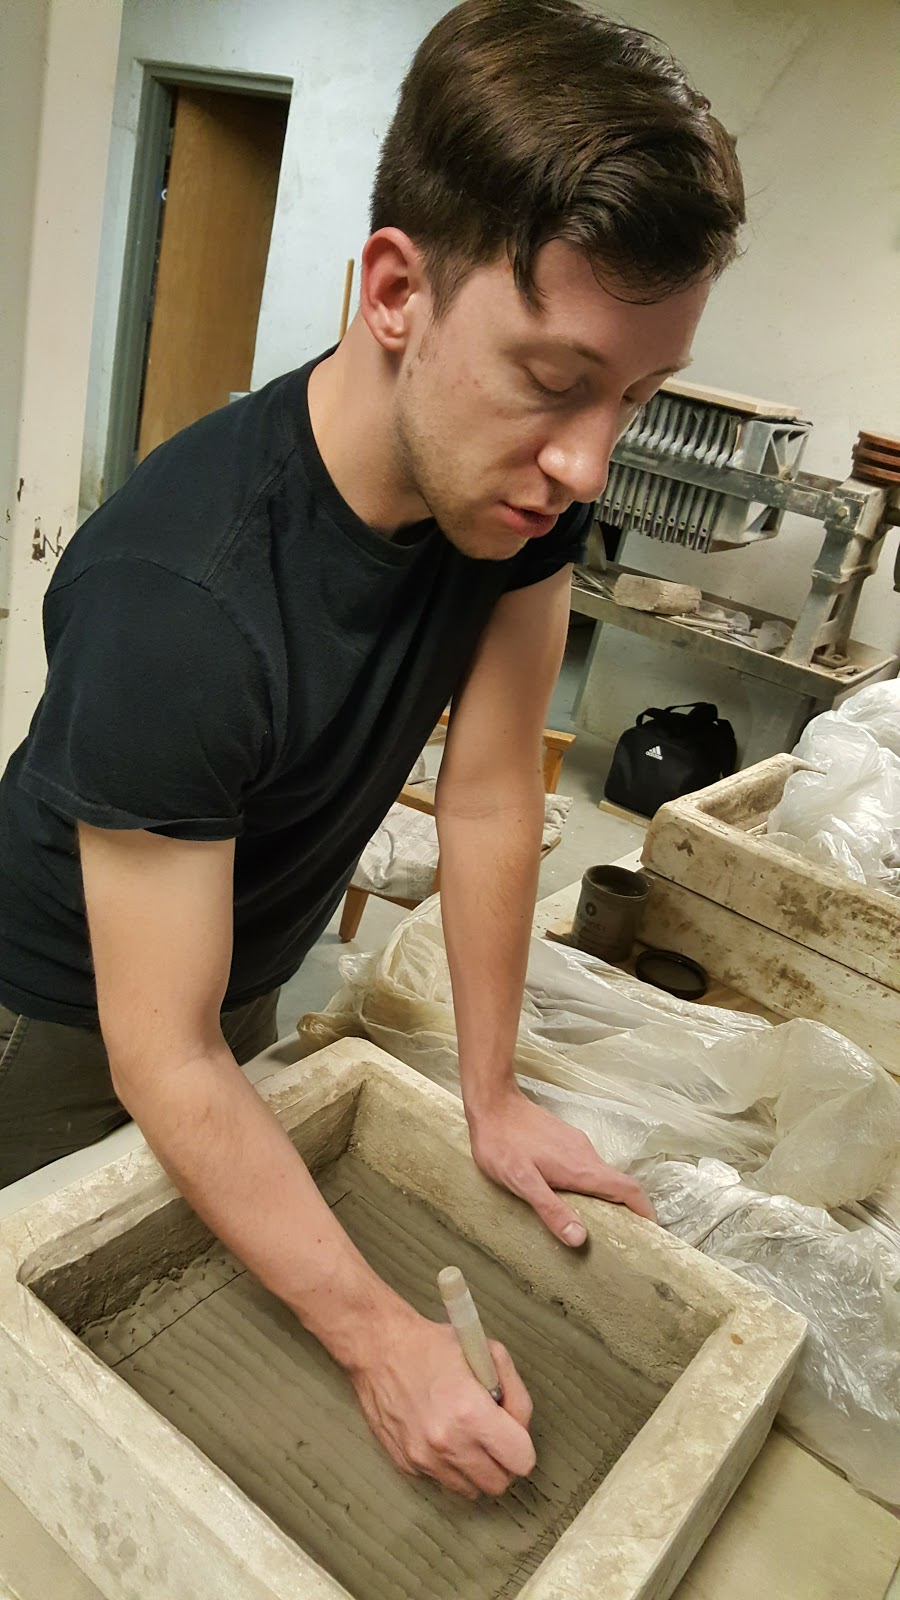 Steven Lemke - Steven Lemke has been an apprentice, exhibition coordinator, and studio manager at the St. John's Pottery. He's returned to do some sculpture work, and he's been super helpful for us newbies!